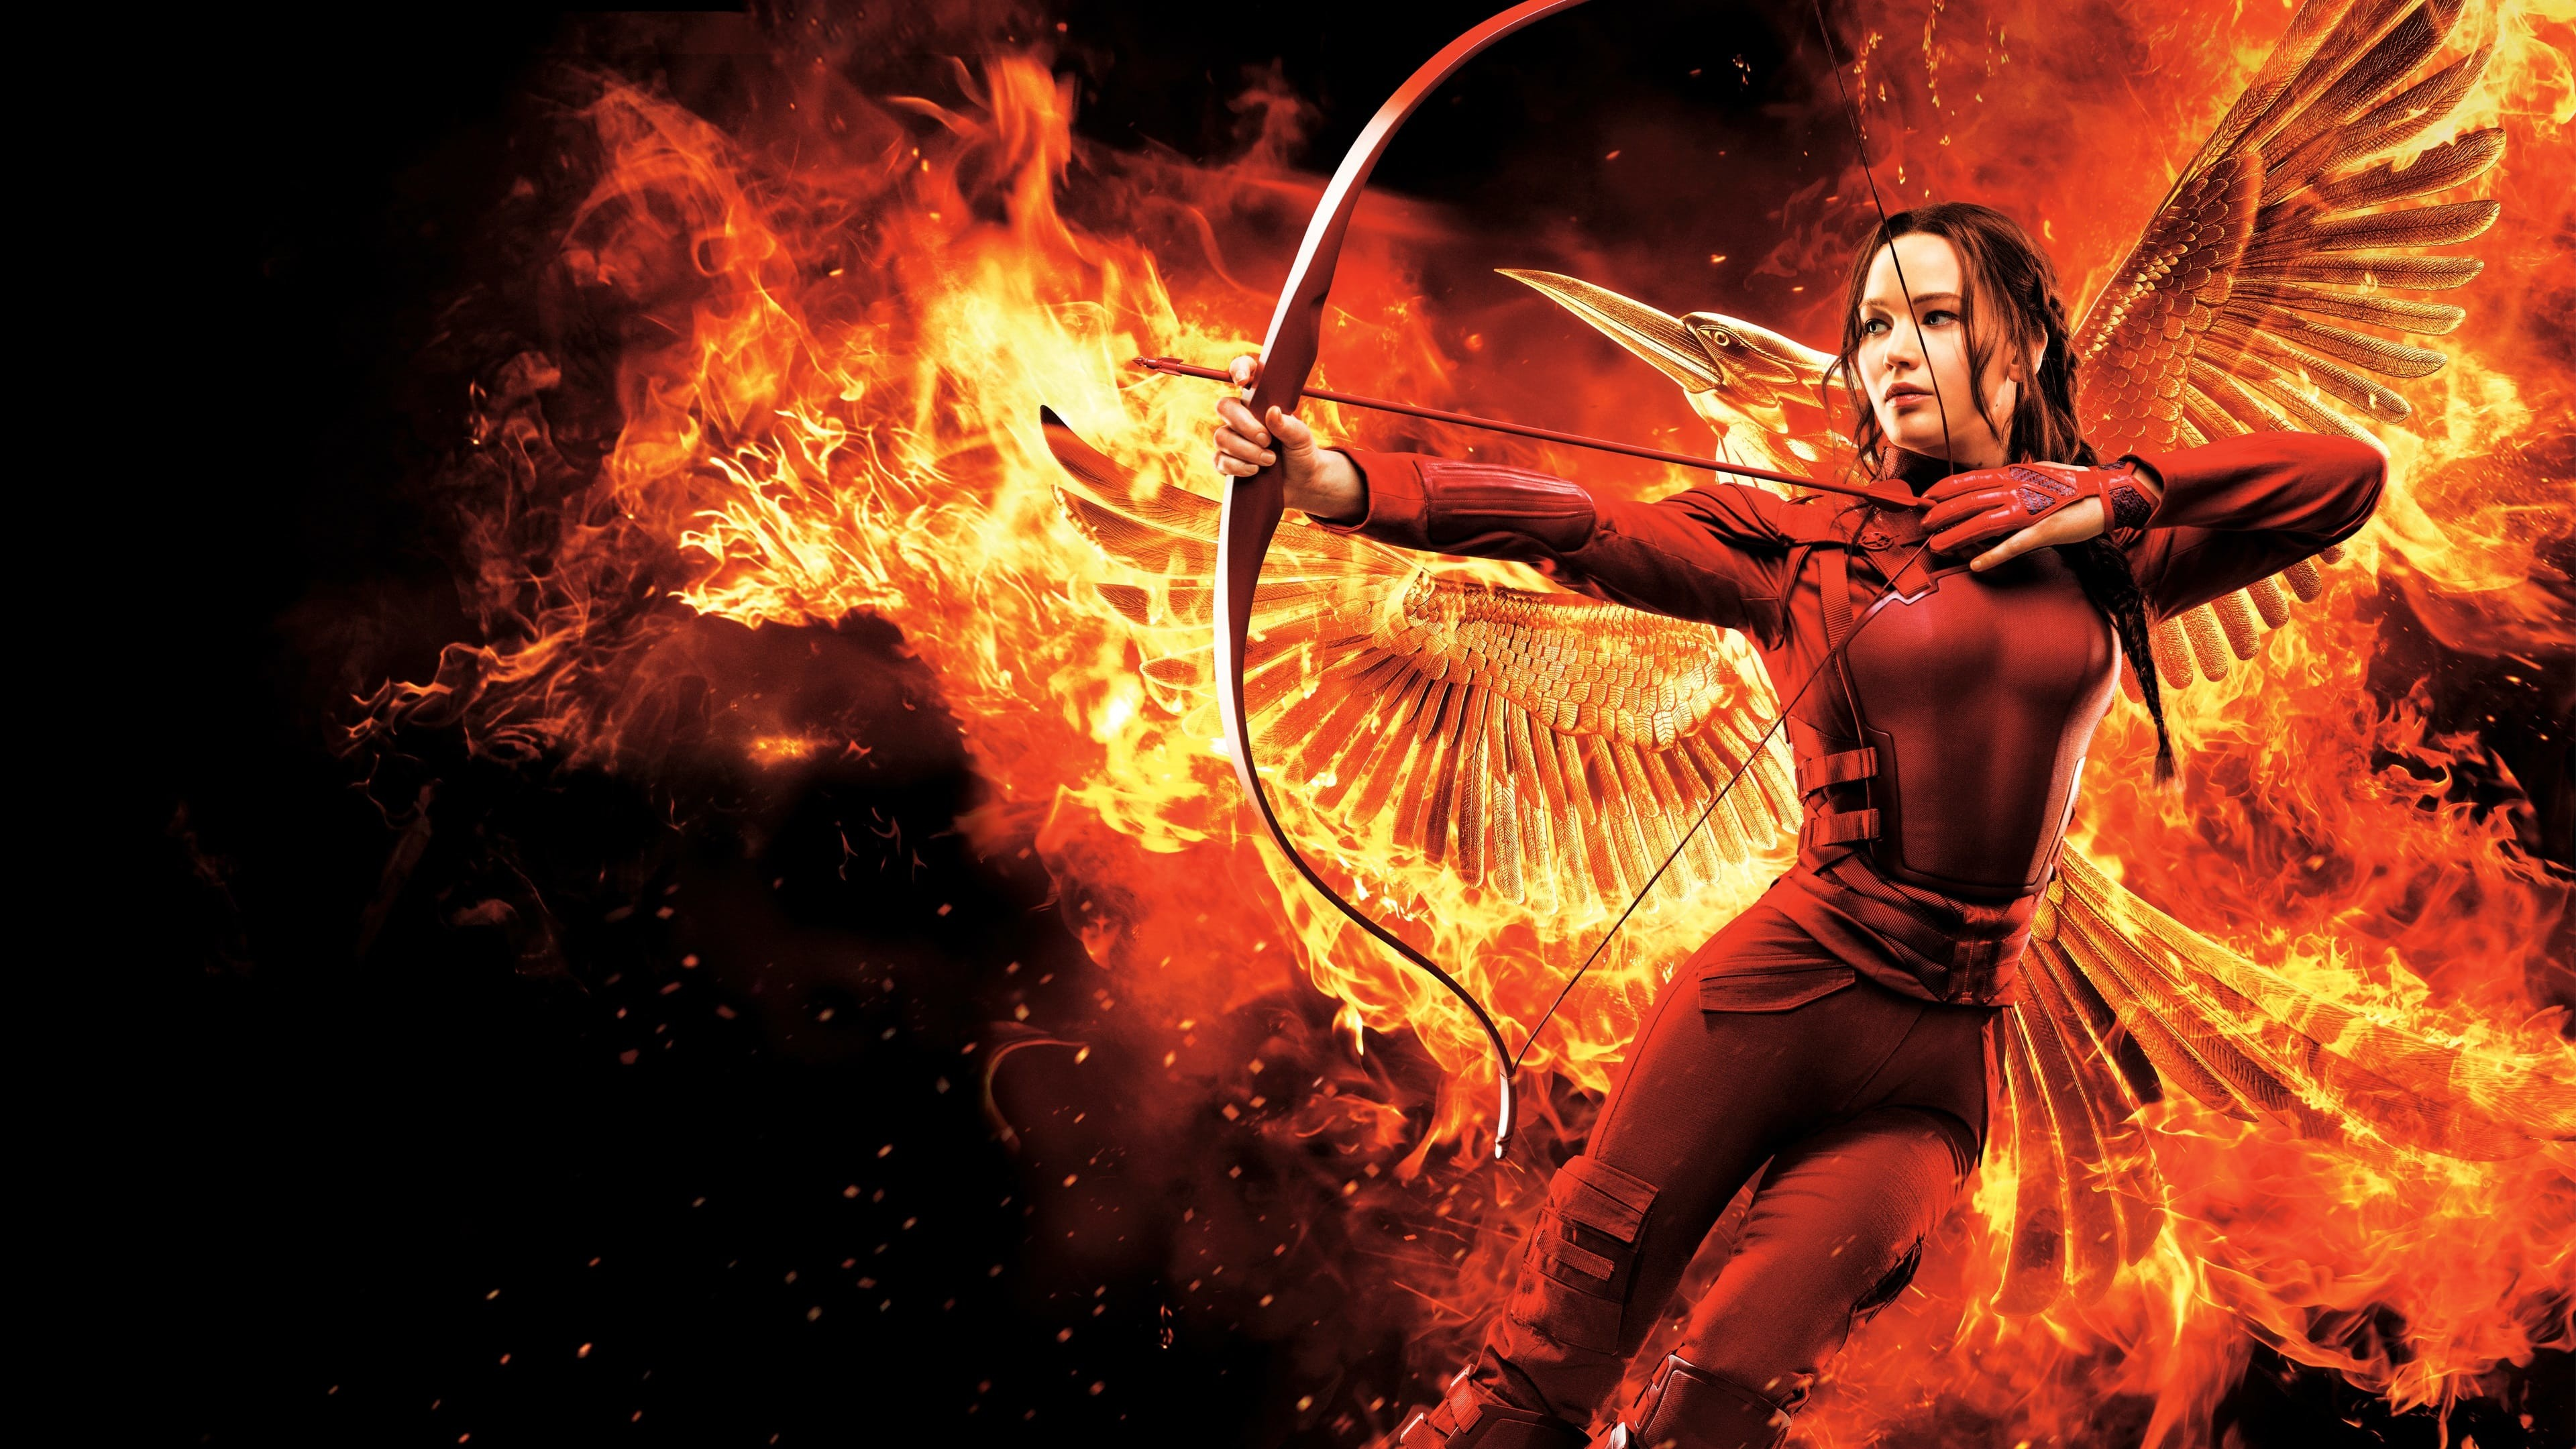 3840x2160 ... The Hunger Games: Mockingjay - Part 2 Wallpapers hd